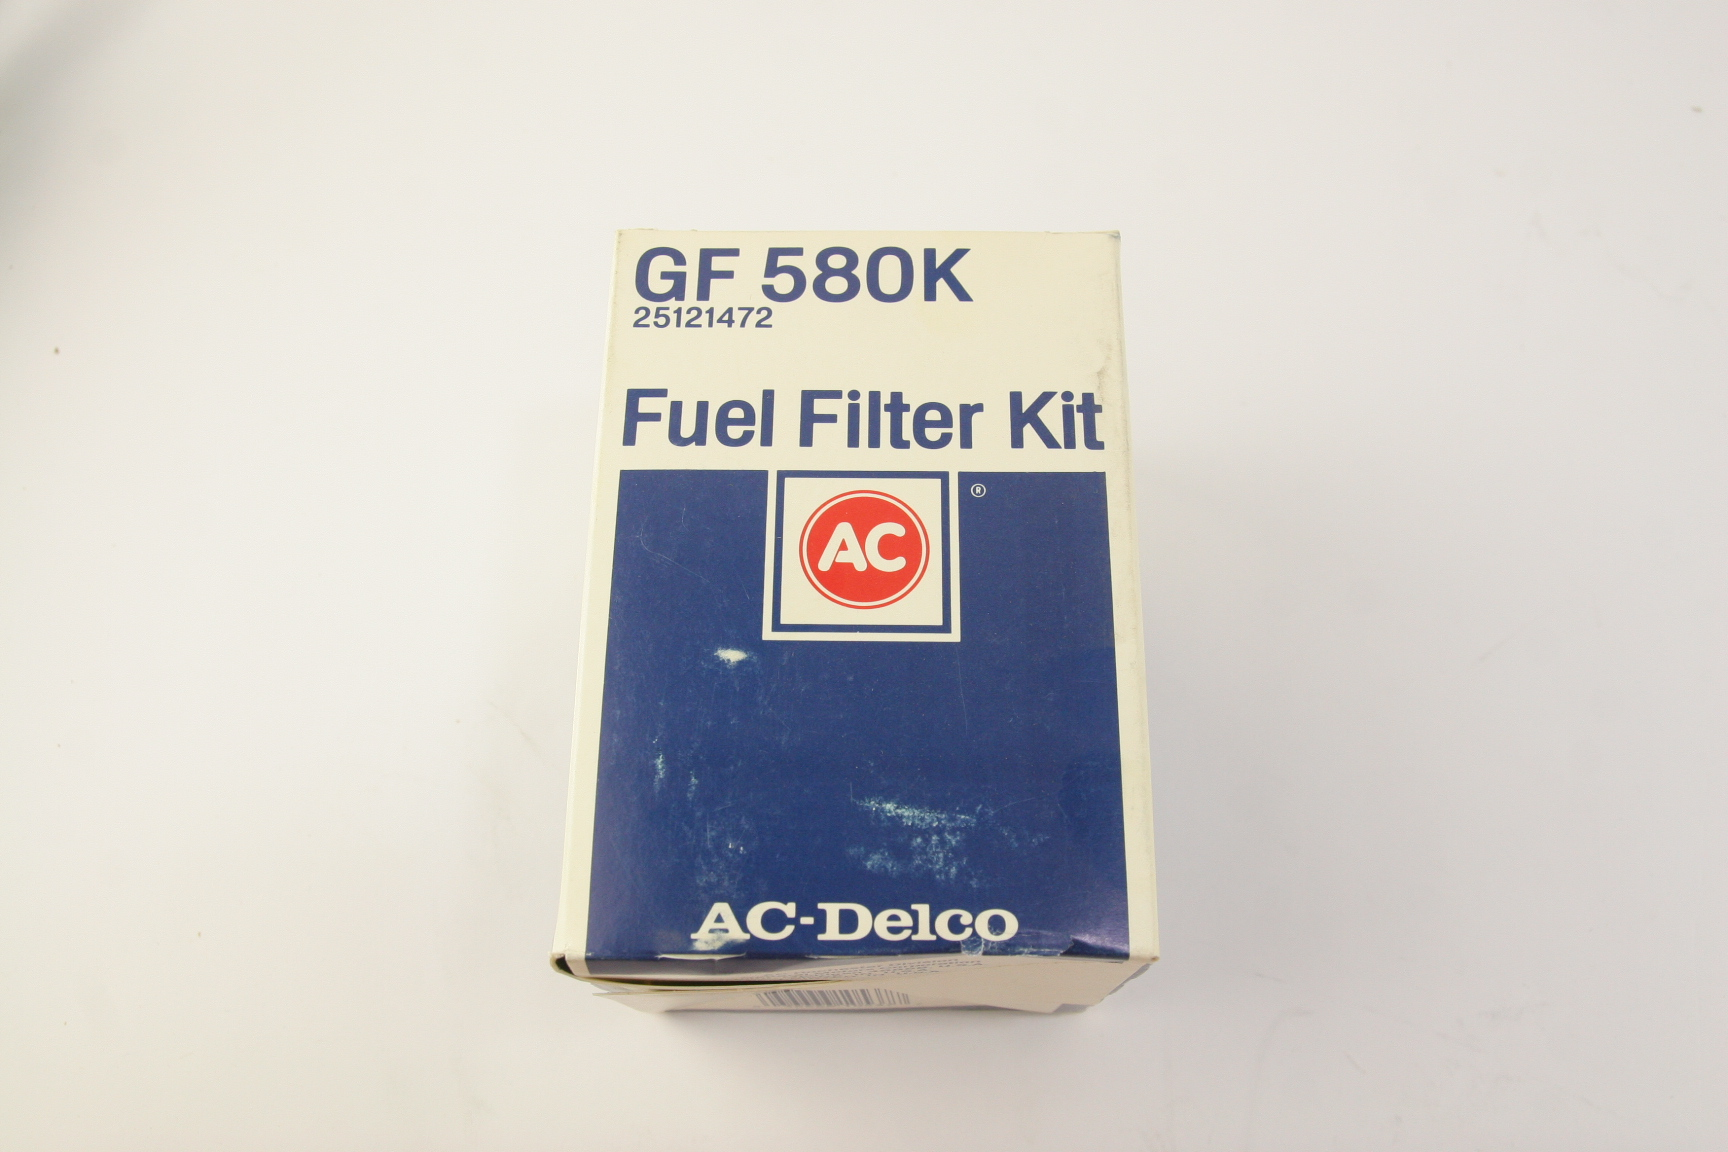 Nos Acdelco Pro Gf580k Fuel Filter With Instructions 25121472 Free Ac Filters Shipping Nip